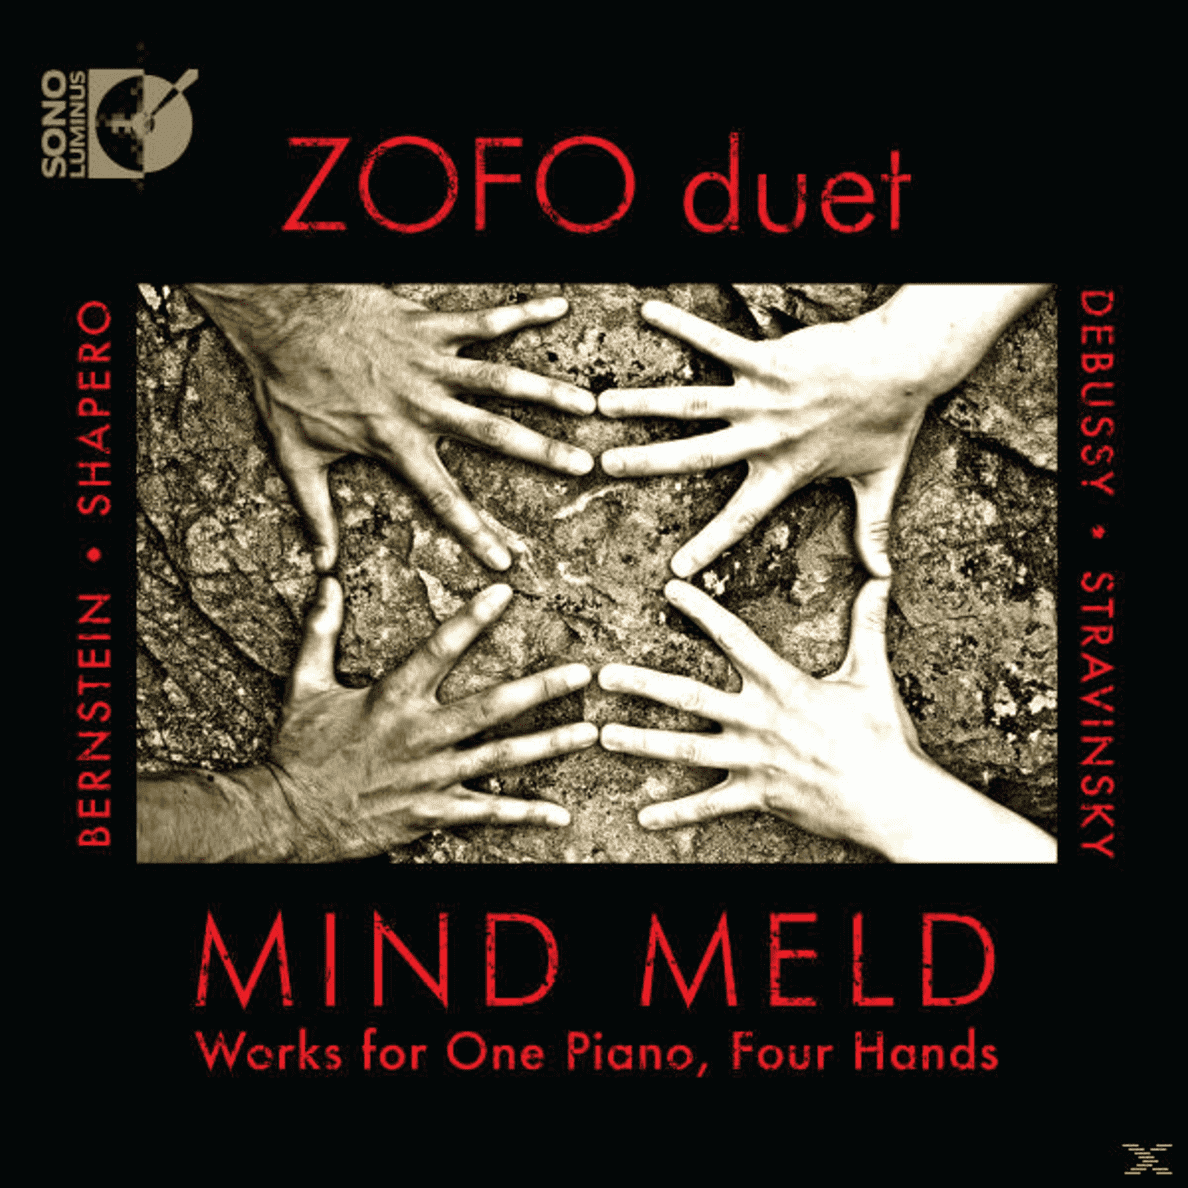 Werks for One Piano, Four Hands Mind Meld, Zofo Duet auf CD